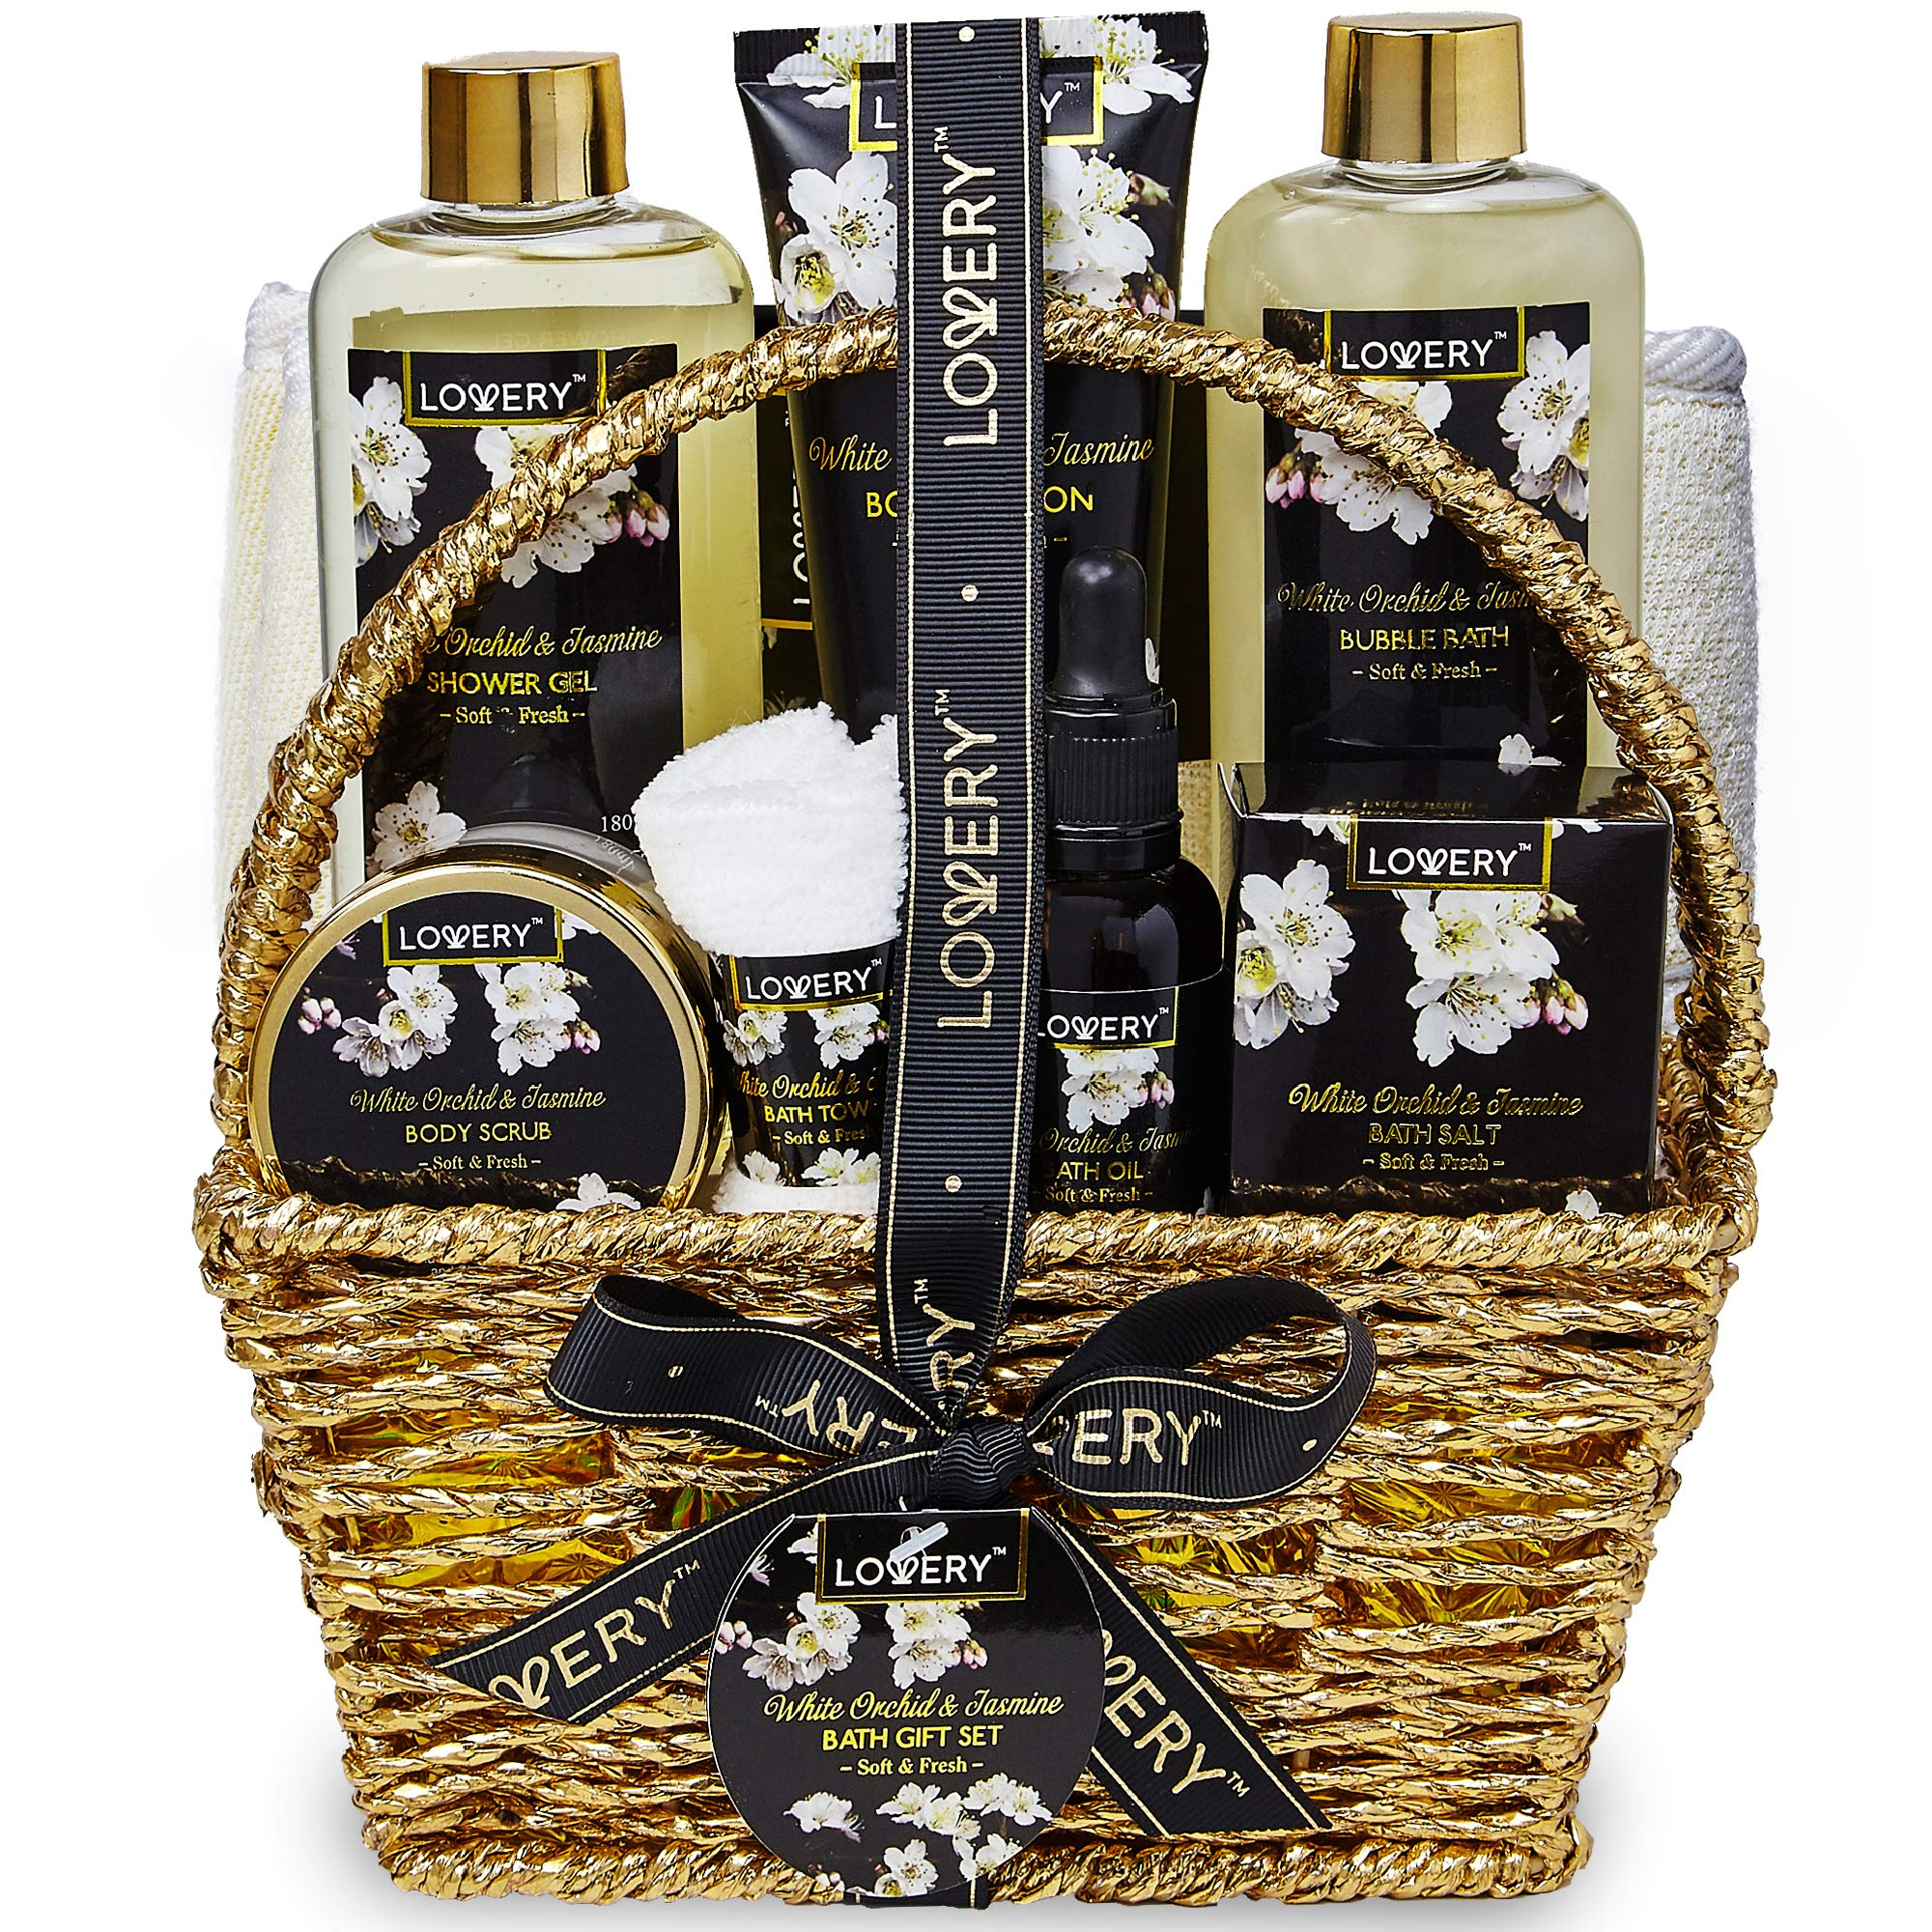 Bath and Body Gift Basket for Women and Men - Orchid and Jasmine Home Spa Set With Body Scrubs, Lotions, Oils, Gels and More - 9 Piece Set by LOVERY